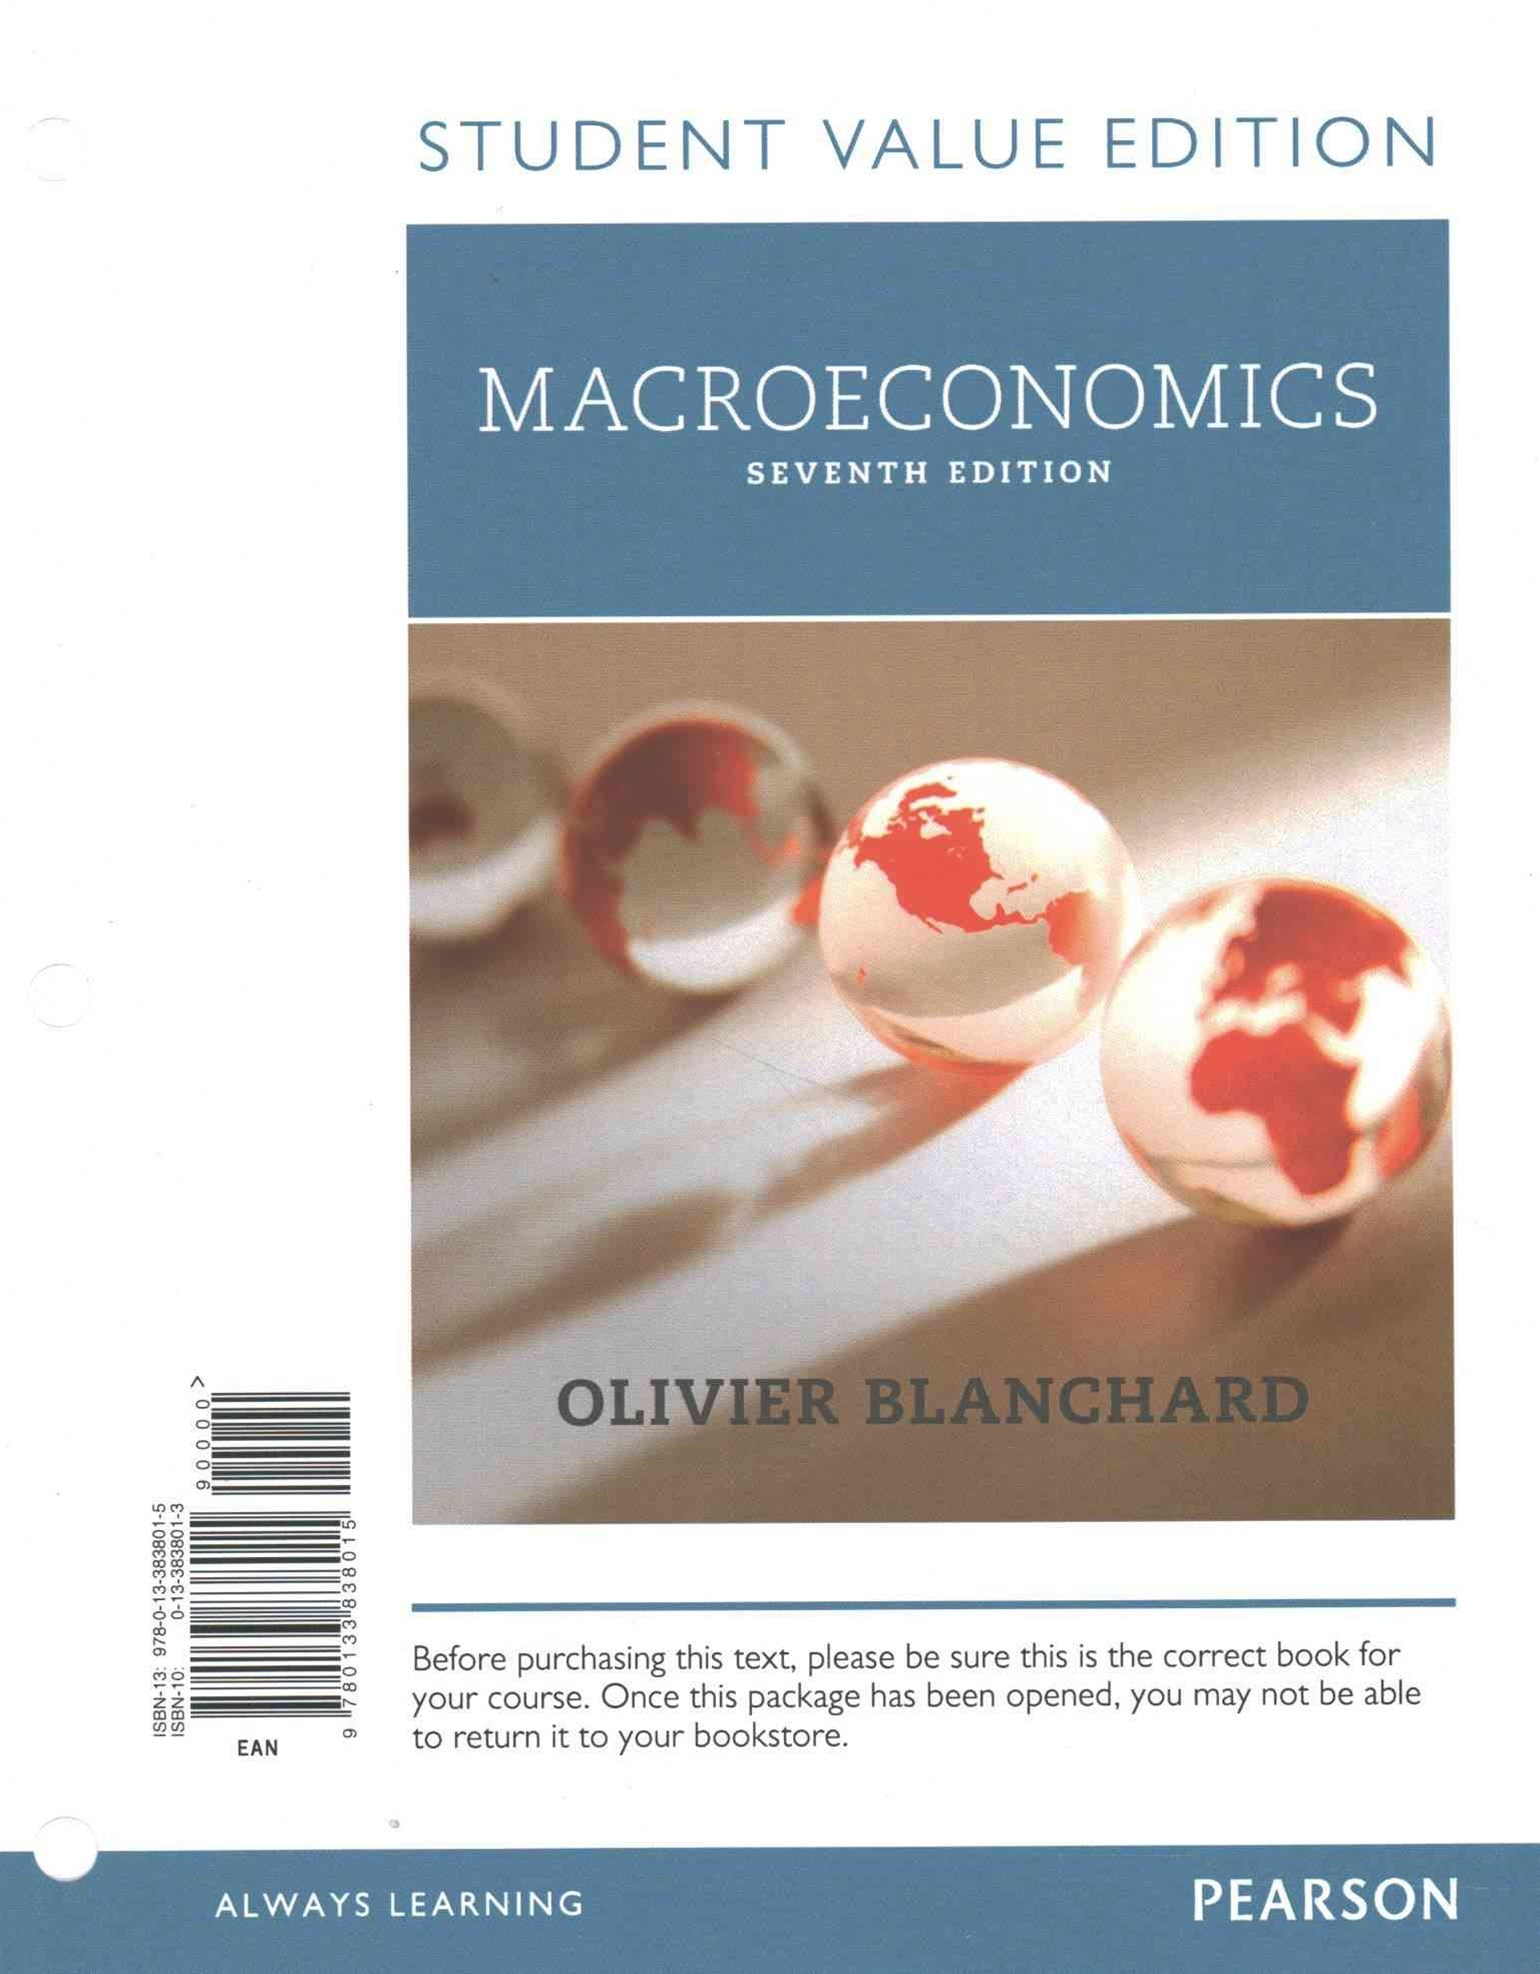 Macroeconomics, Student Value Edition